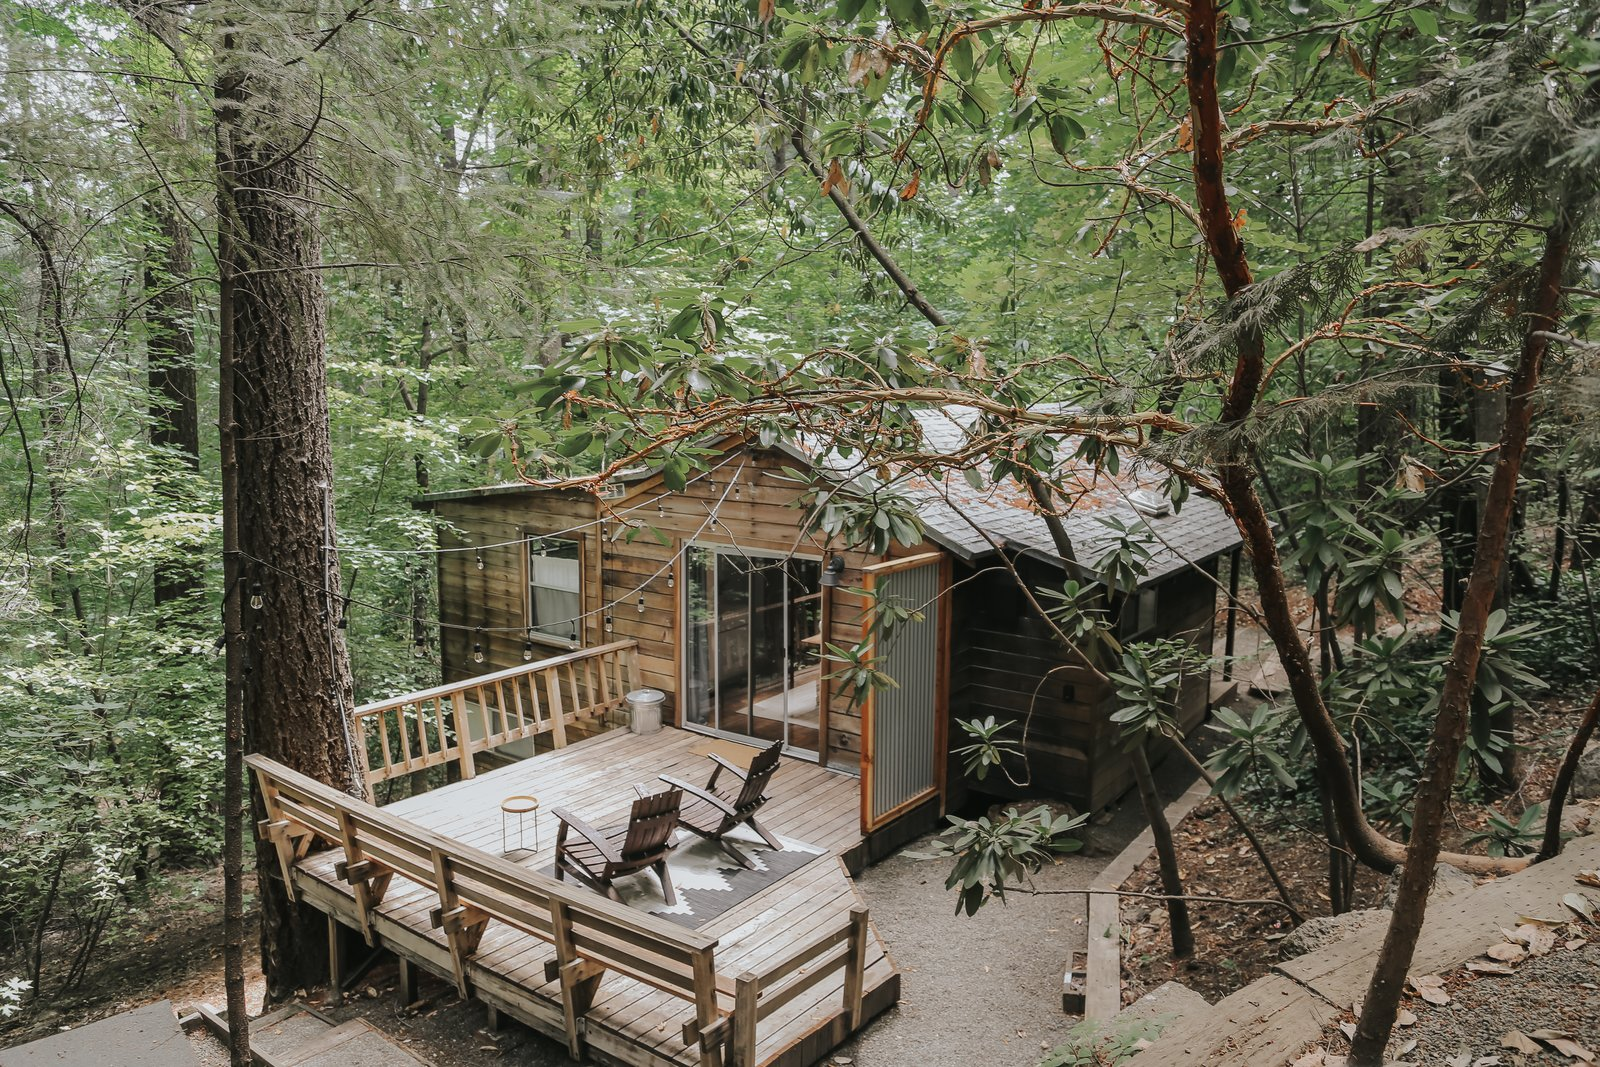 """Nestled among towering fir trees and magnificent dogwoods in Cobb, California—just an hour north of Napa Valley—is the 700-square-foot cabin Hope Mendes recreated as an idyllic family escape. """"We've always had a dream of owning and renovating a cabin in the woods,"""" Hope says, """"a place [where] we could take our kids when we need to get away from the hustle and bustle of our work lives."""""""